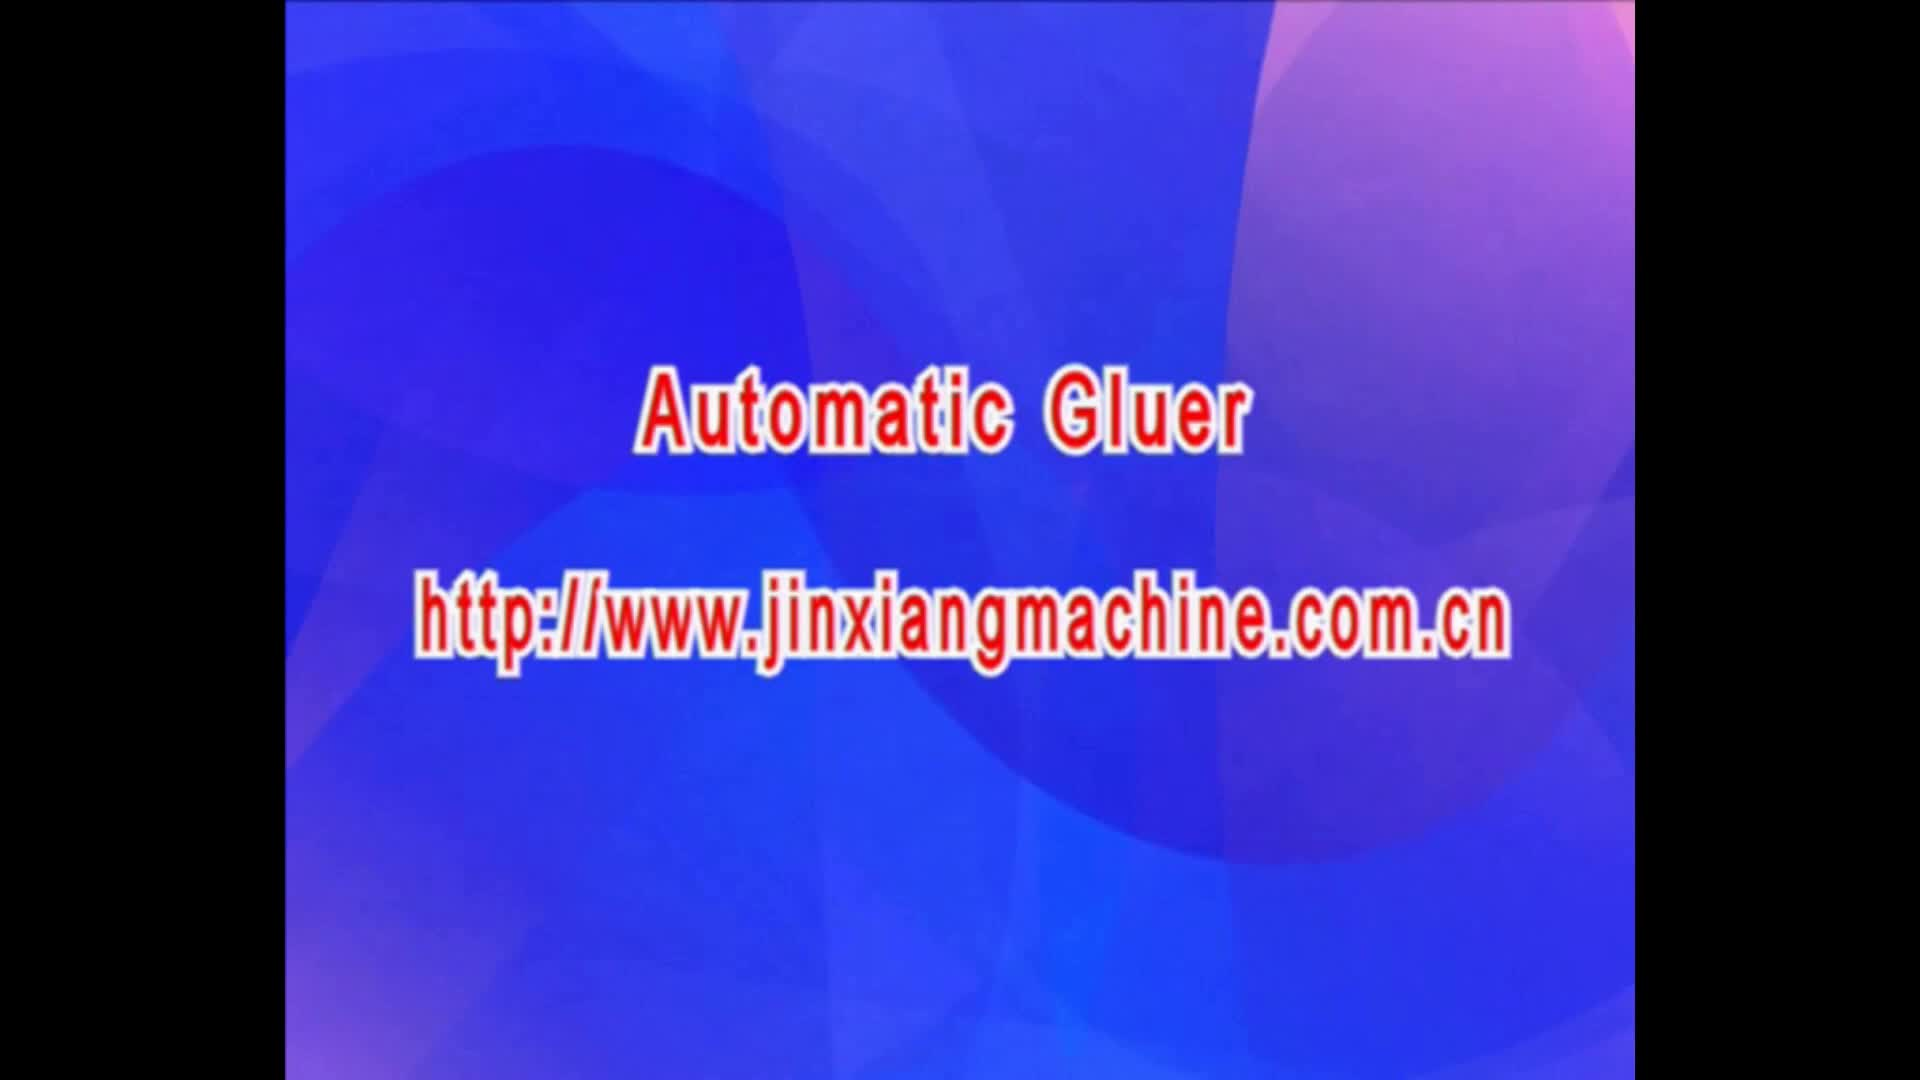 Jxd Afg High Speed Automatic Gluer Machine Buy Fully